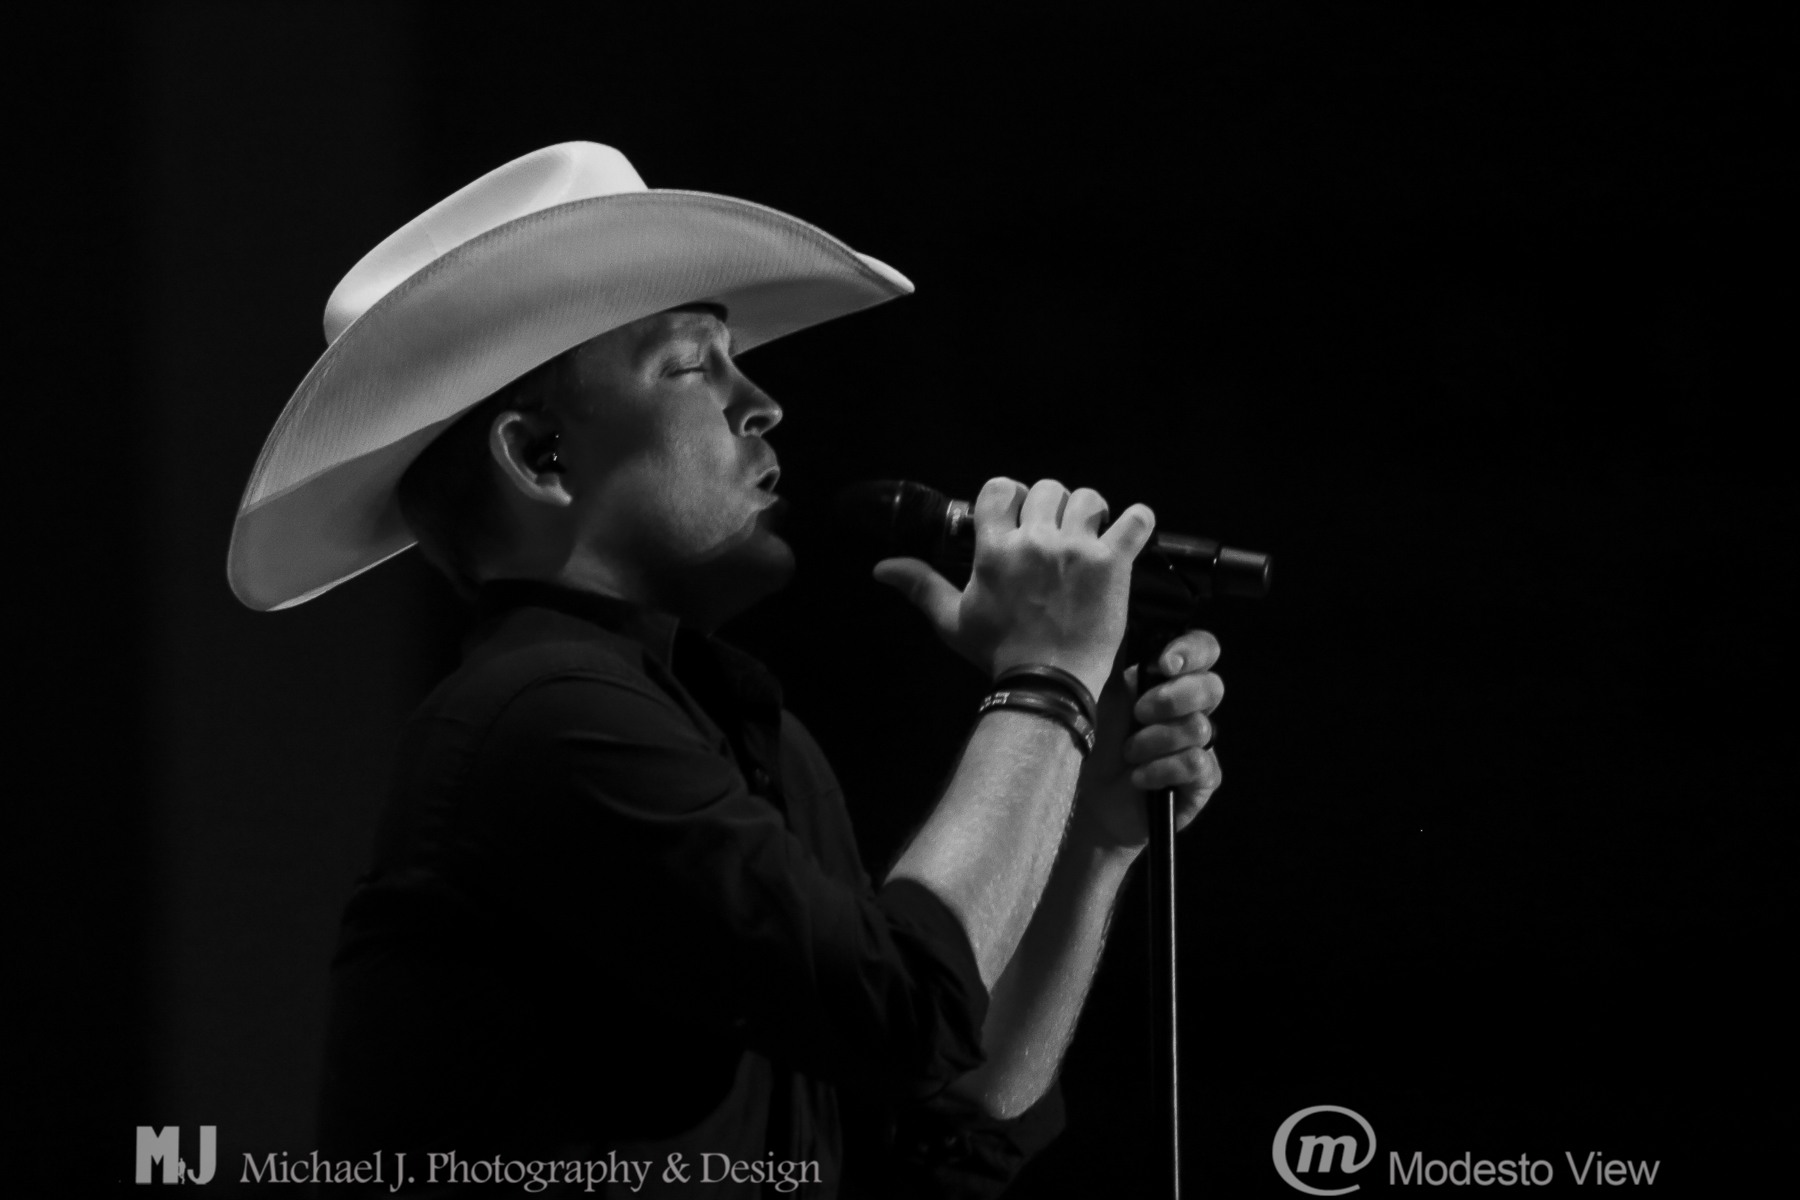 Just Moore concert image